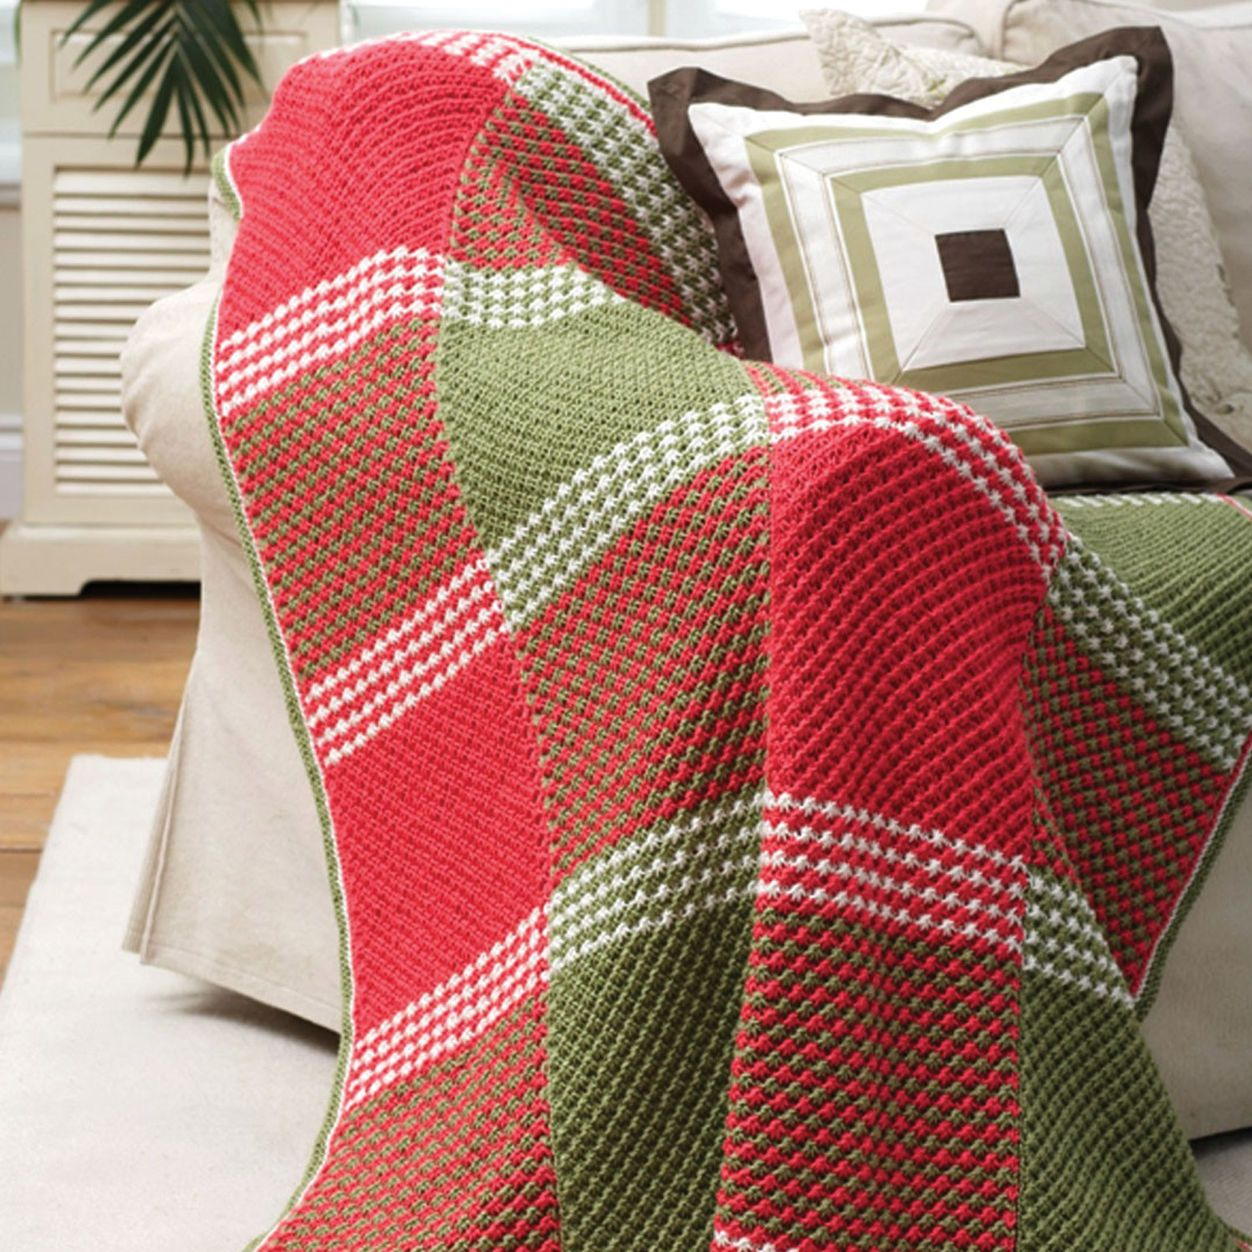 Patons Star Stitch Afghan (With images) | Blanket knitting ...